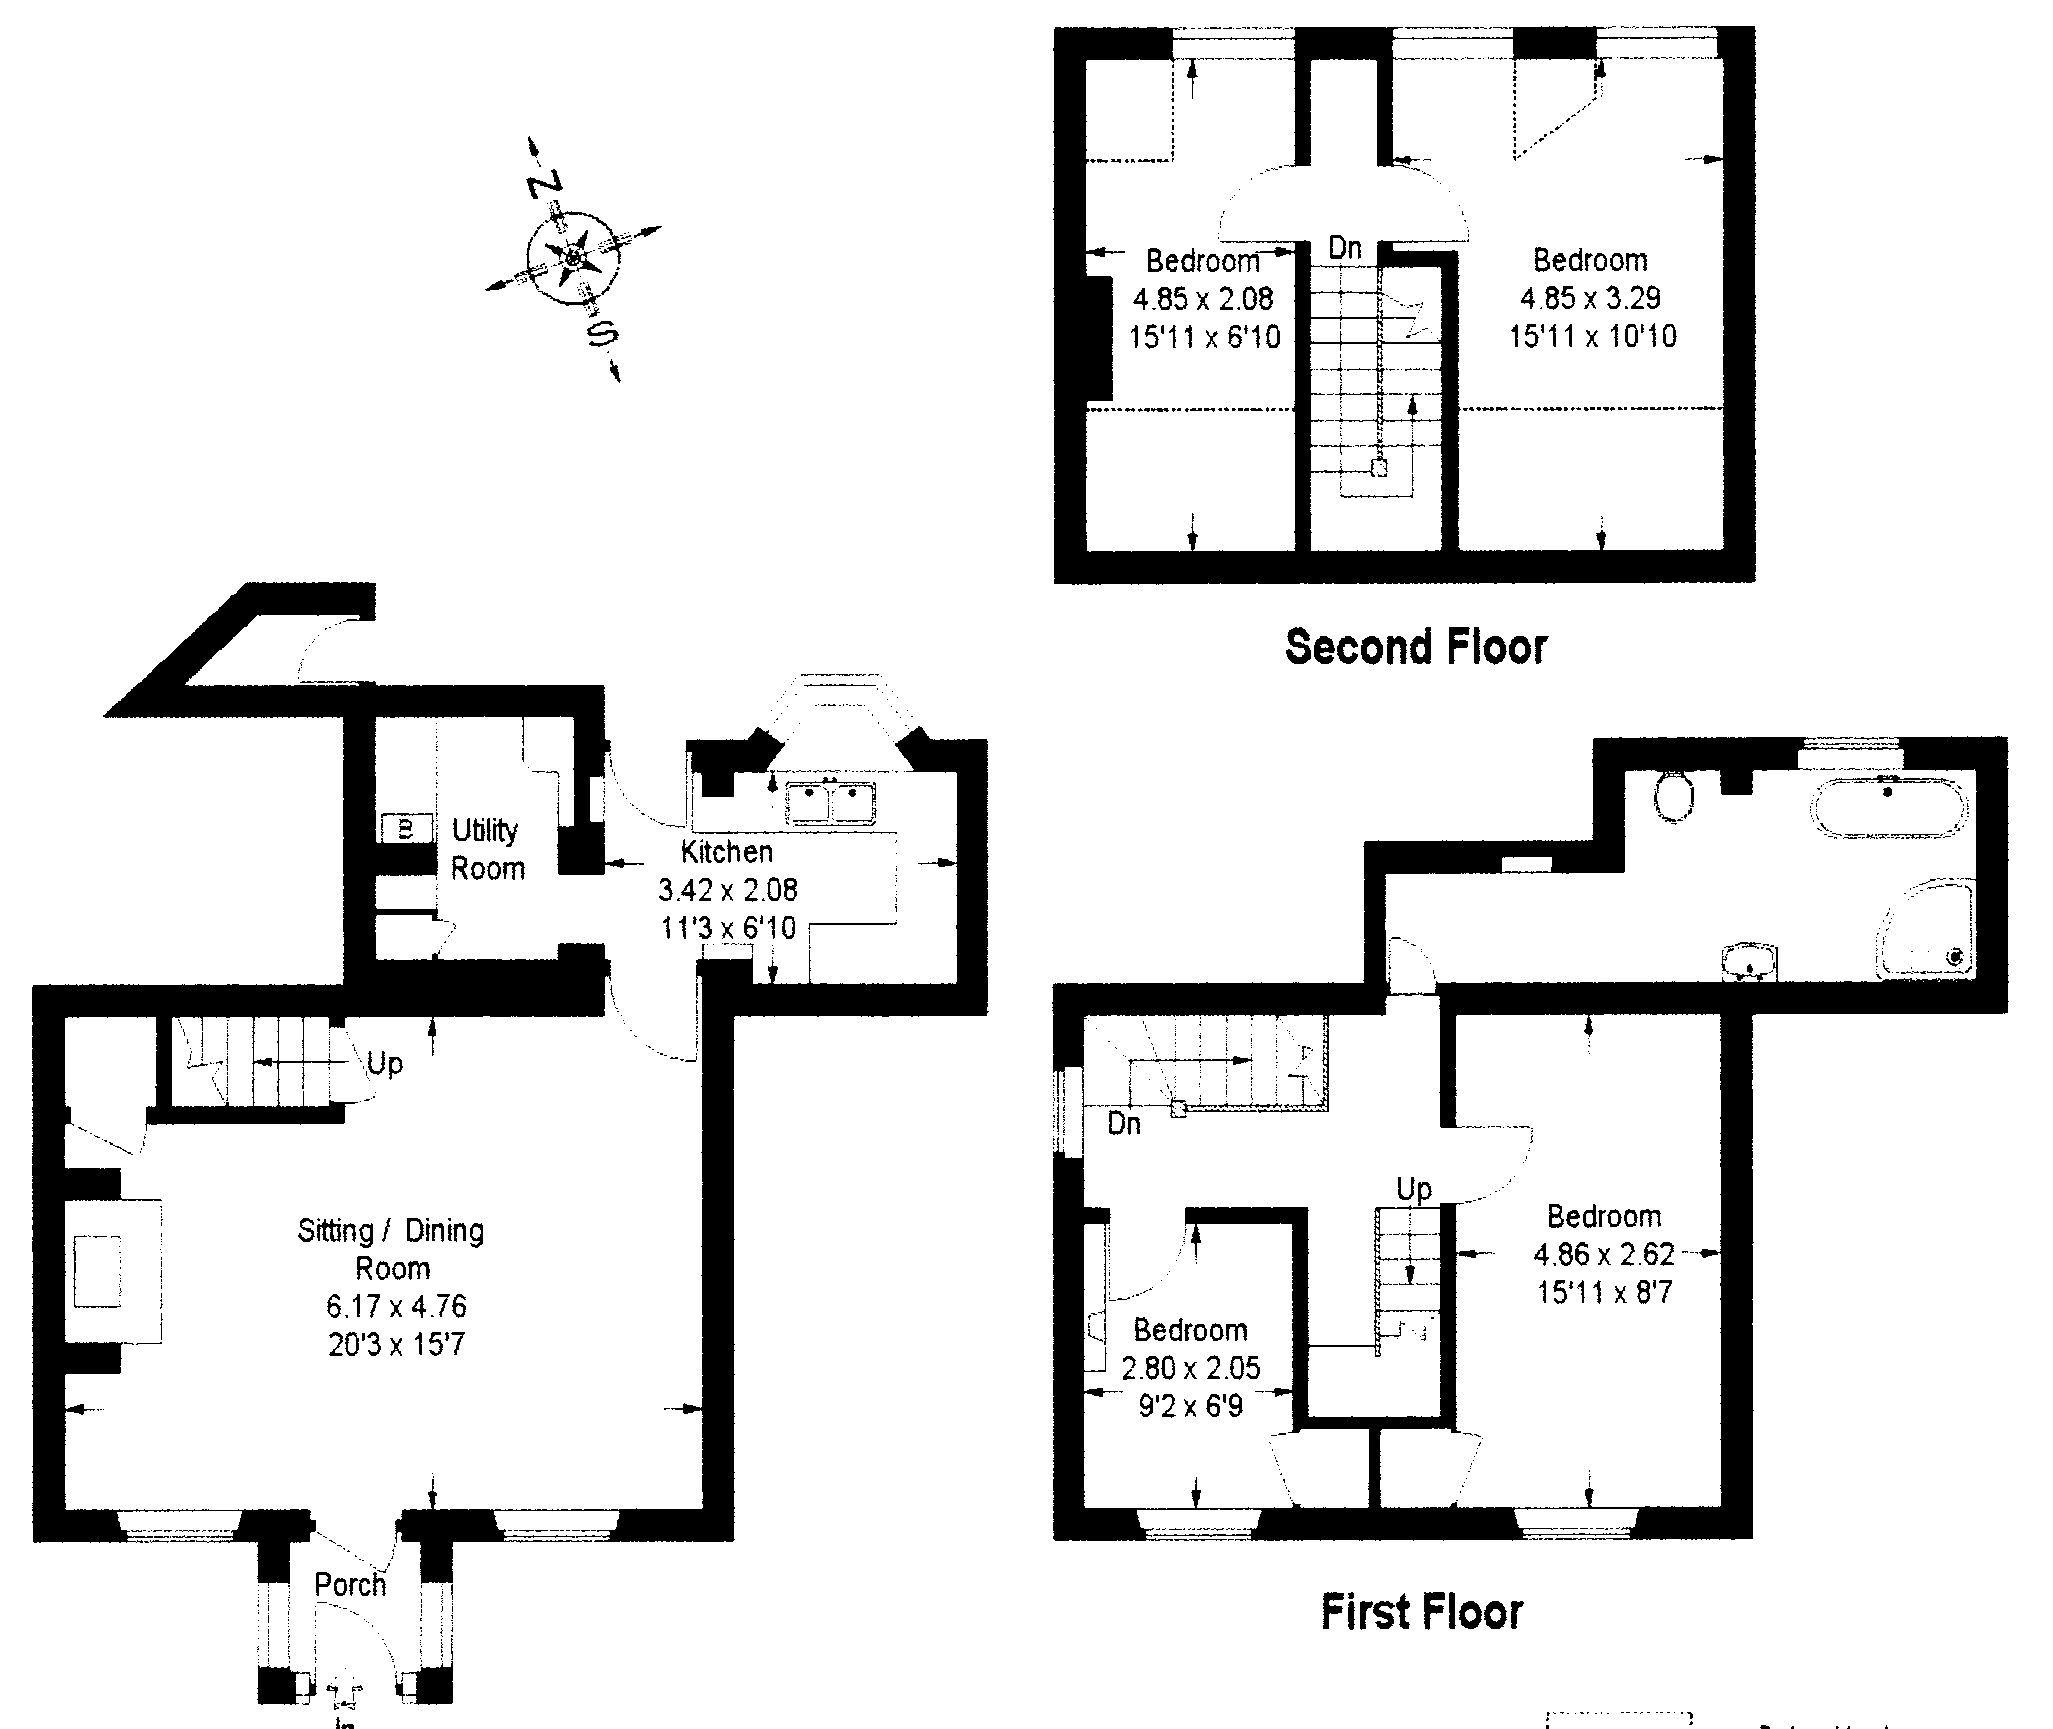 Create Floor Plans Online For Free With Decorative Planning Of A Large House For Make Floor Plans For Free Online